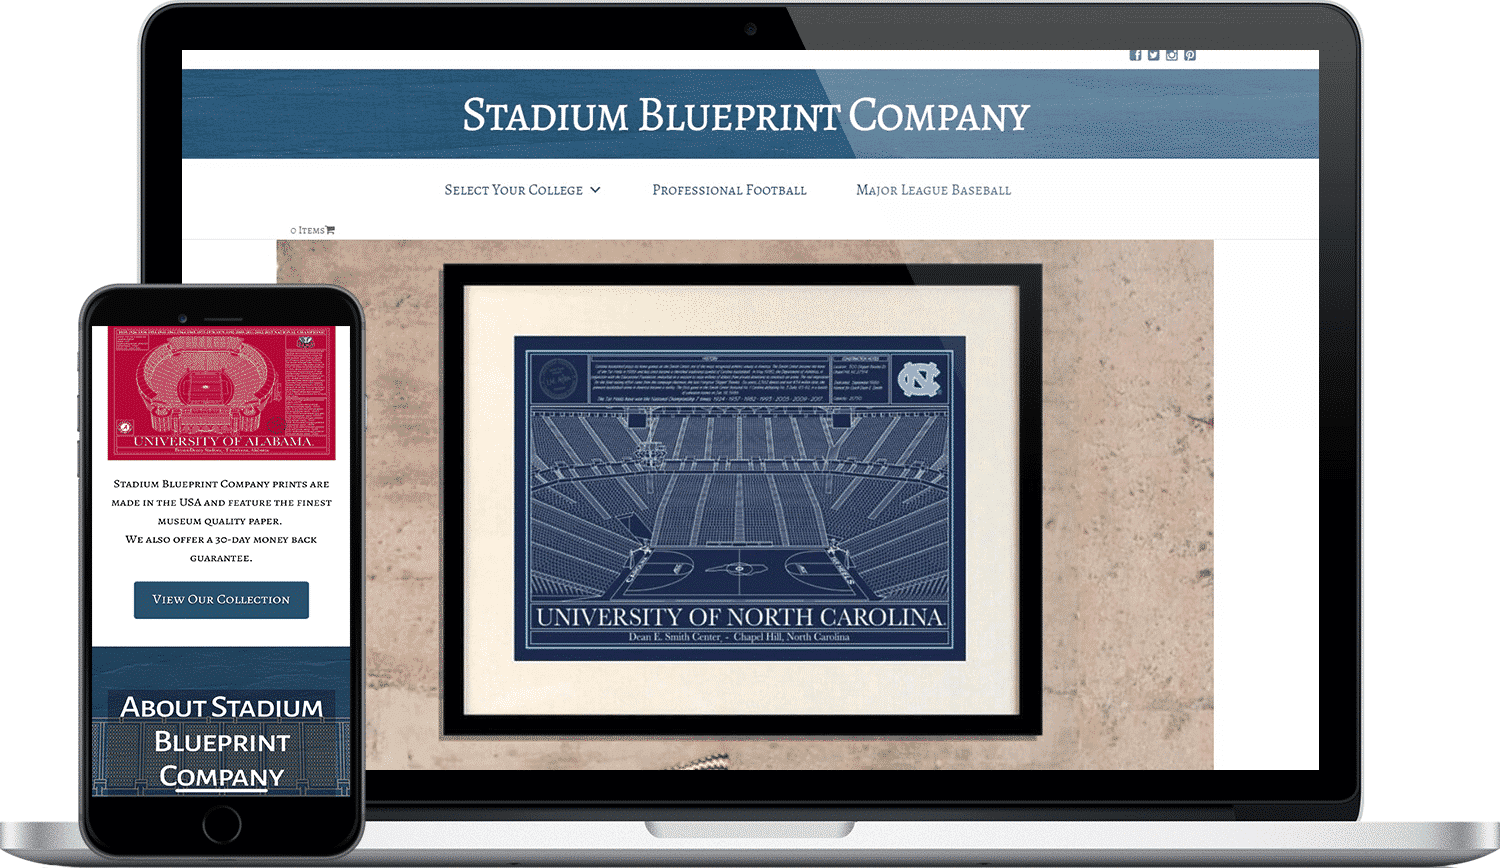 Stadium Blueprint Company Digital Marketing